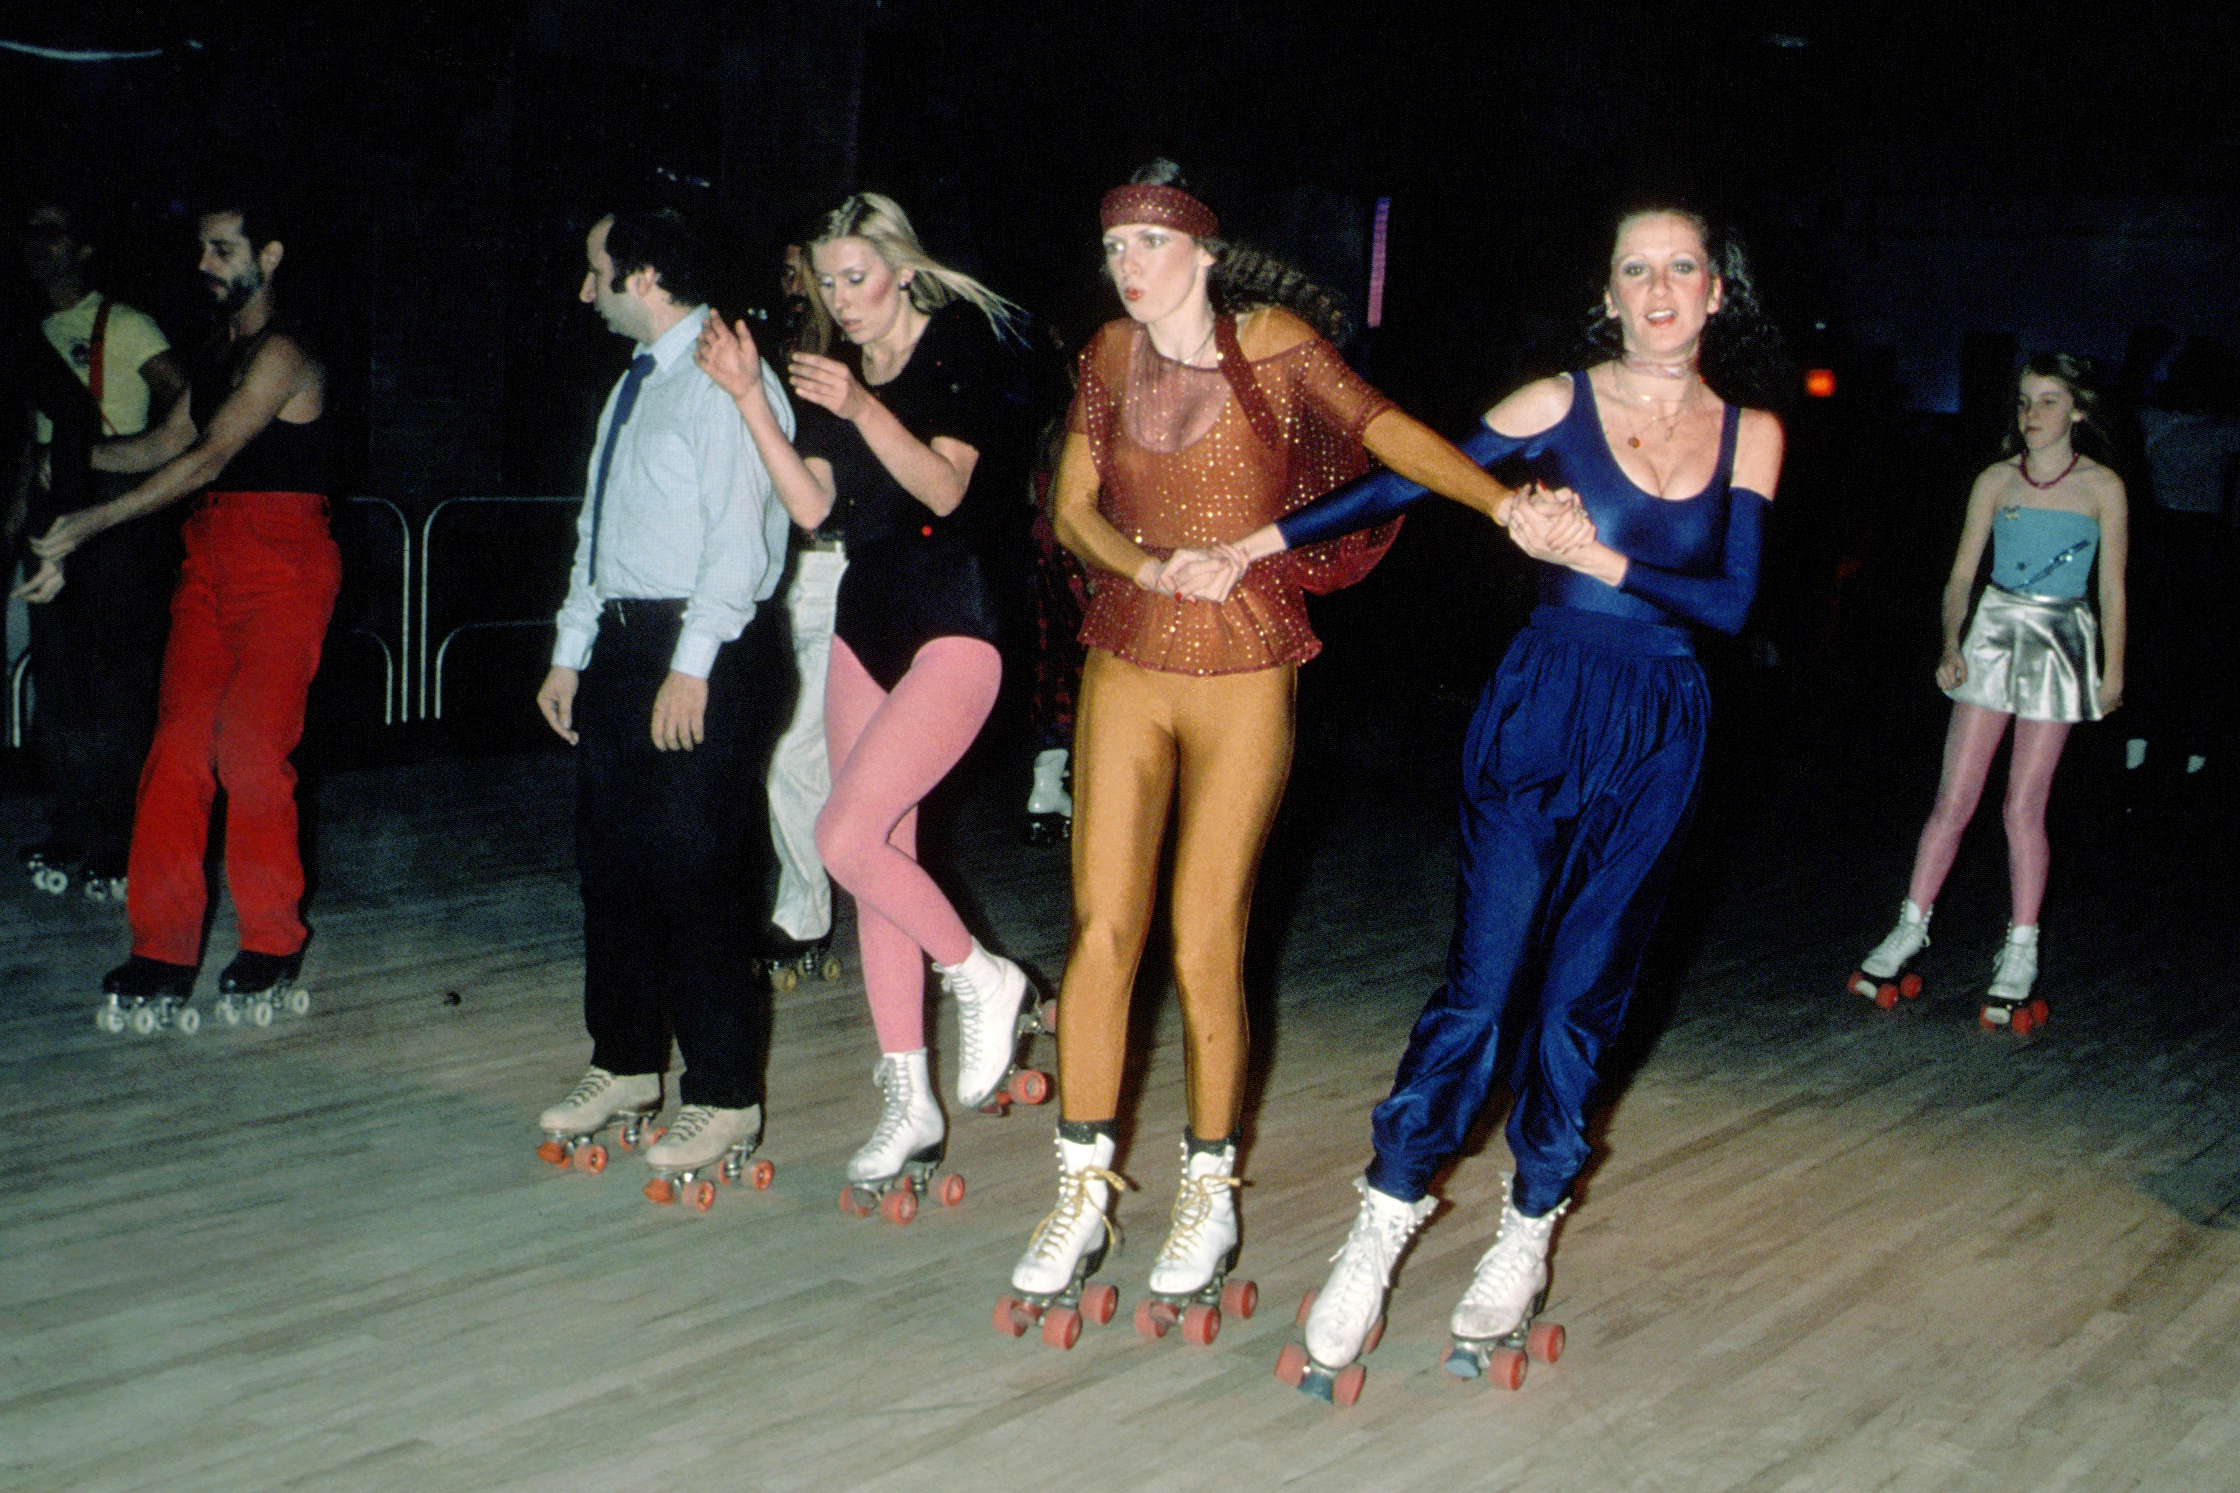 People roller skating in flamboyant 1970s apparel